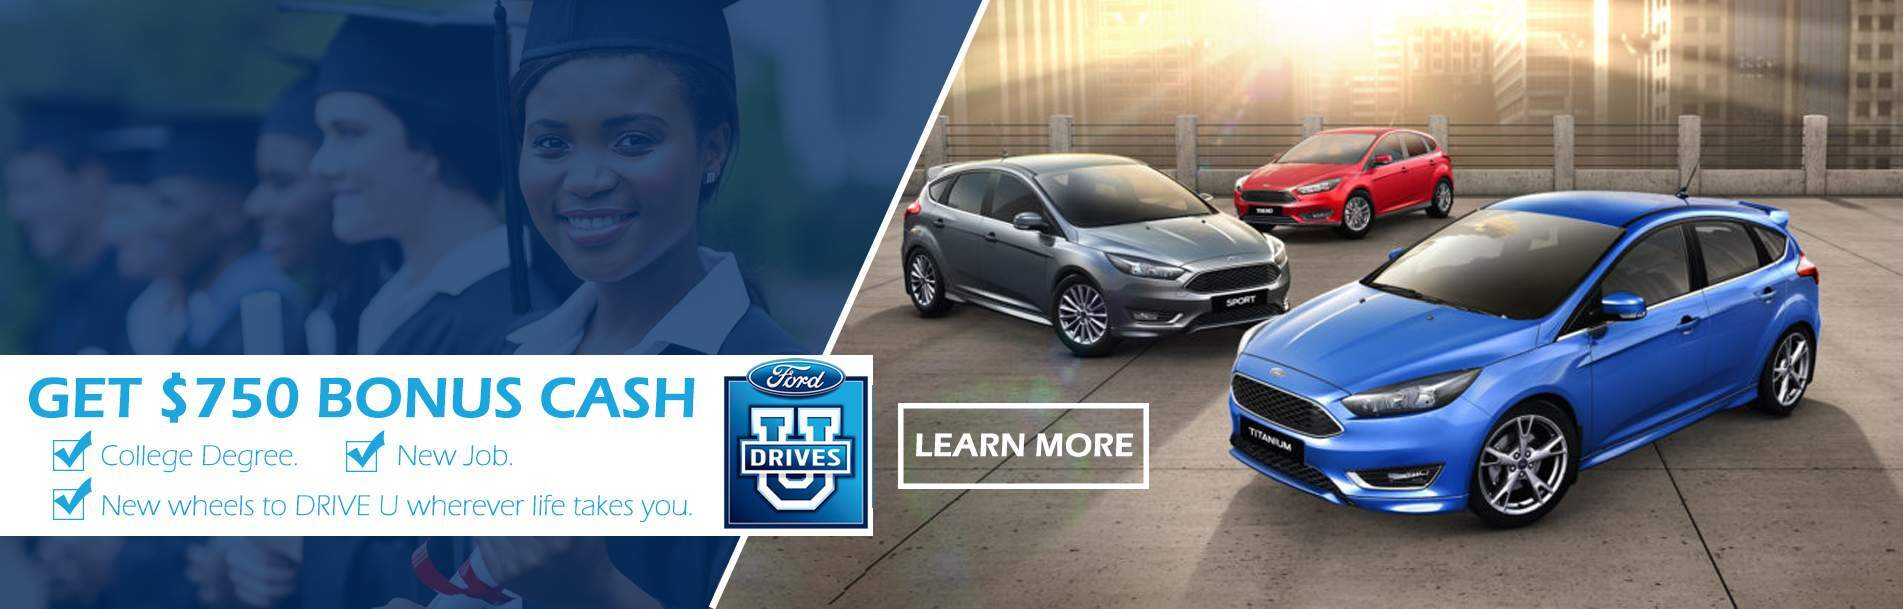 Ford Graduation Rebate